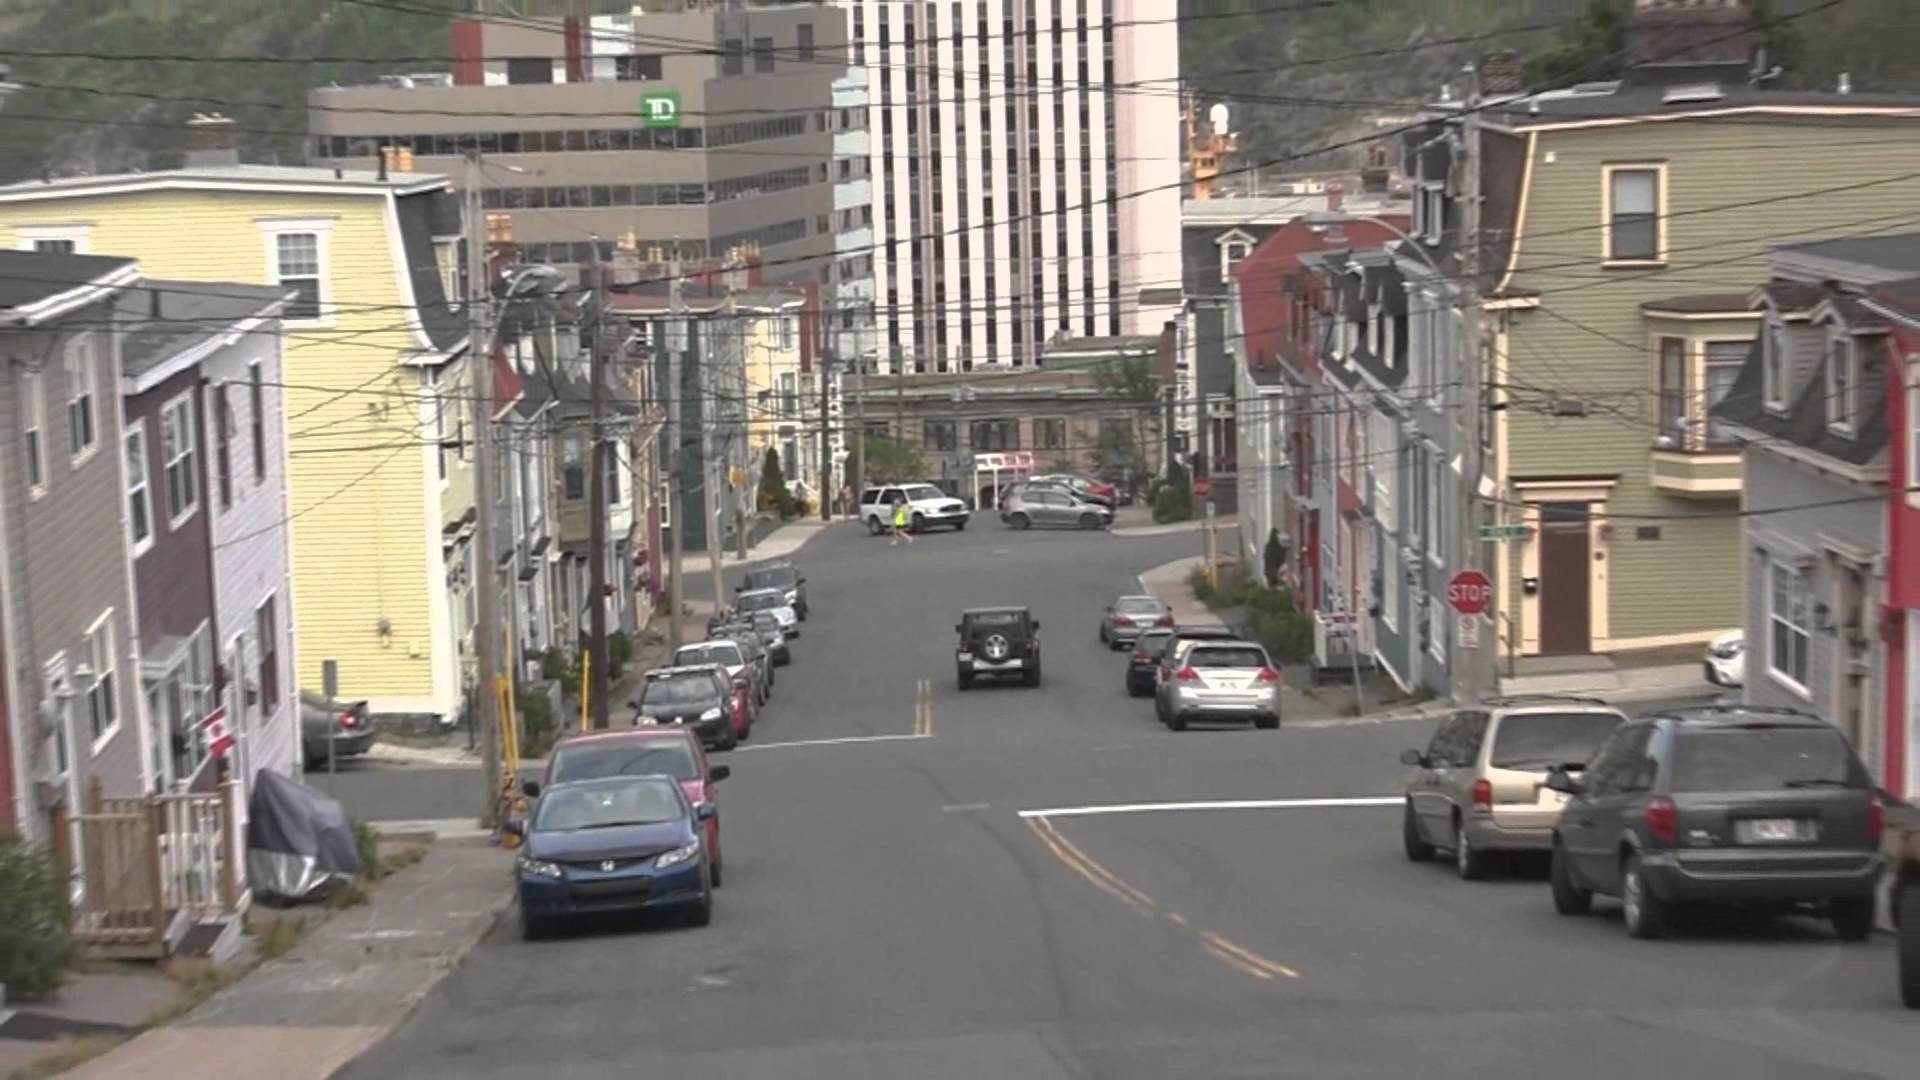 The Stranded Video Trailer – St. John's, Newfoundland